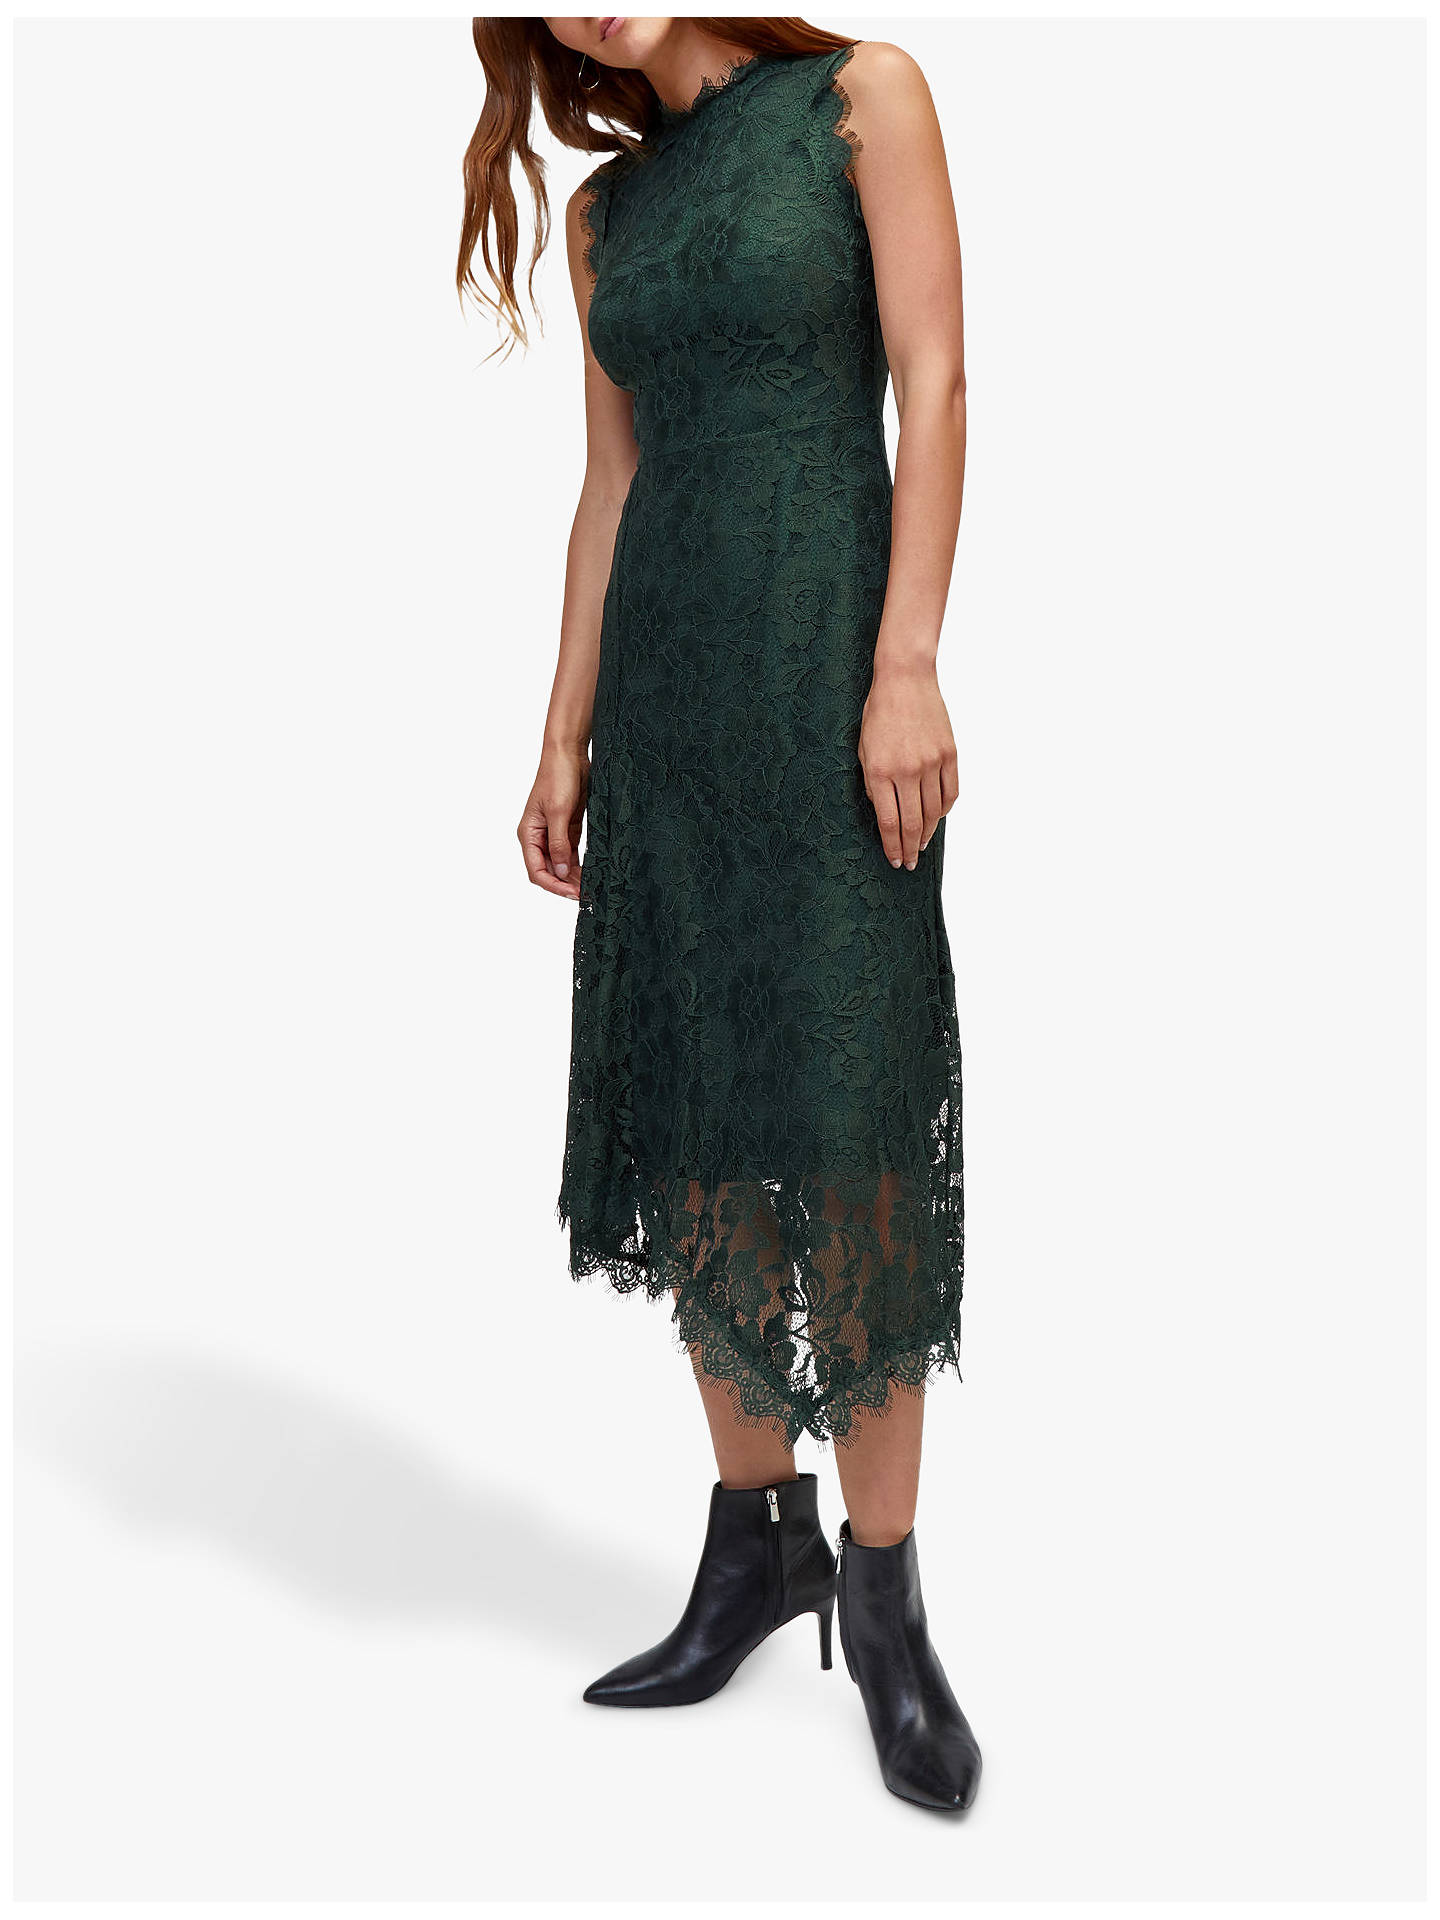 c56cb5298766b Warehouse Lace Midi Dress, Dark Green at John Lewis & Partners